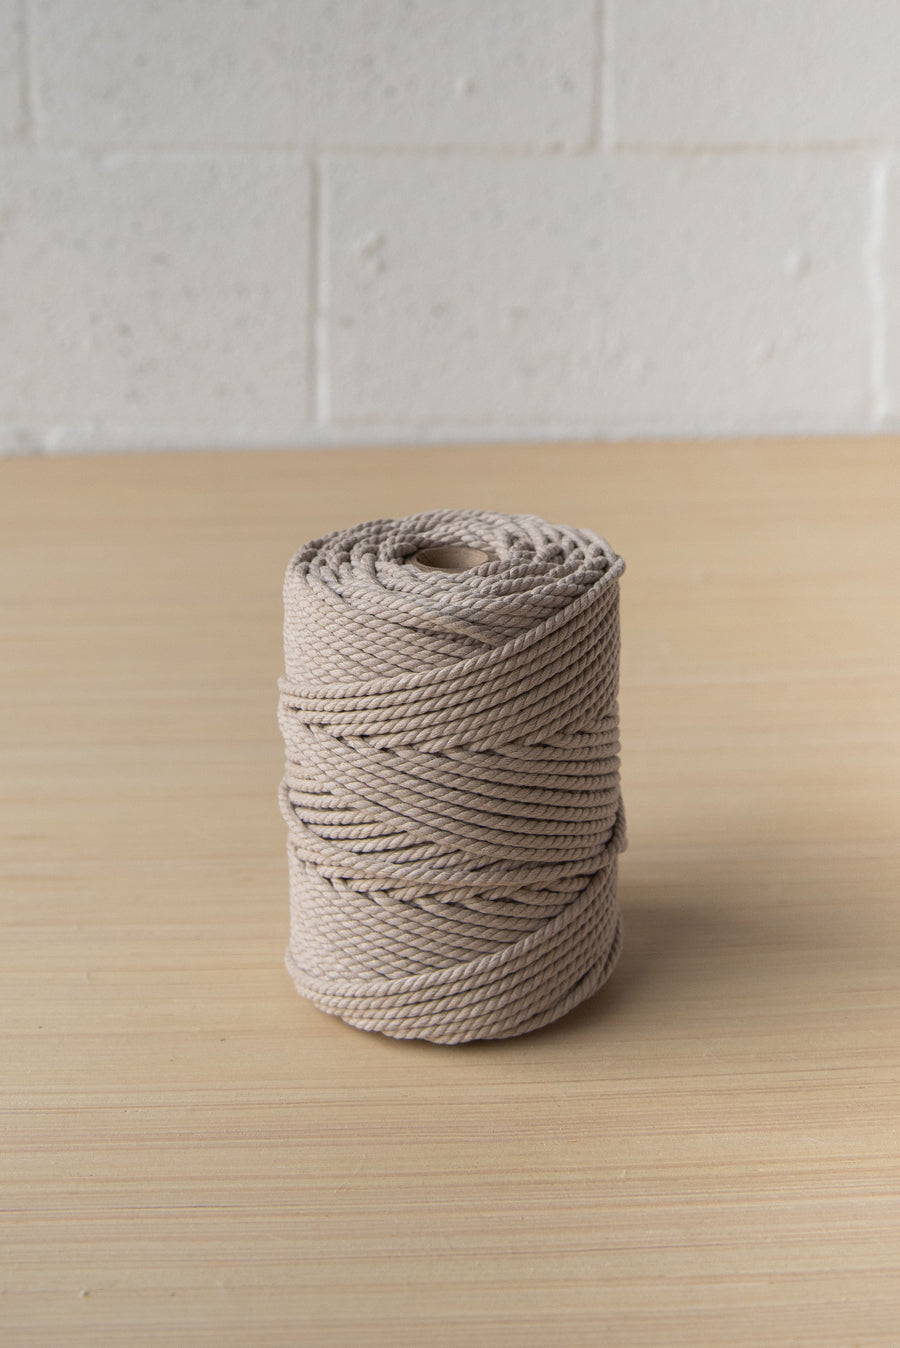 COTTON ROPE 3 MM - 3 PLY - BEIGE COLOR